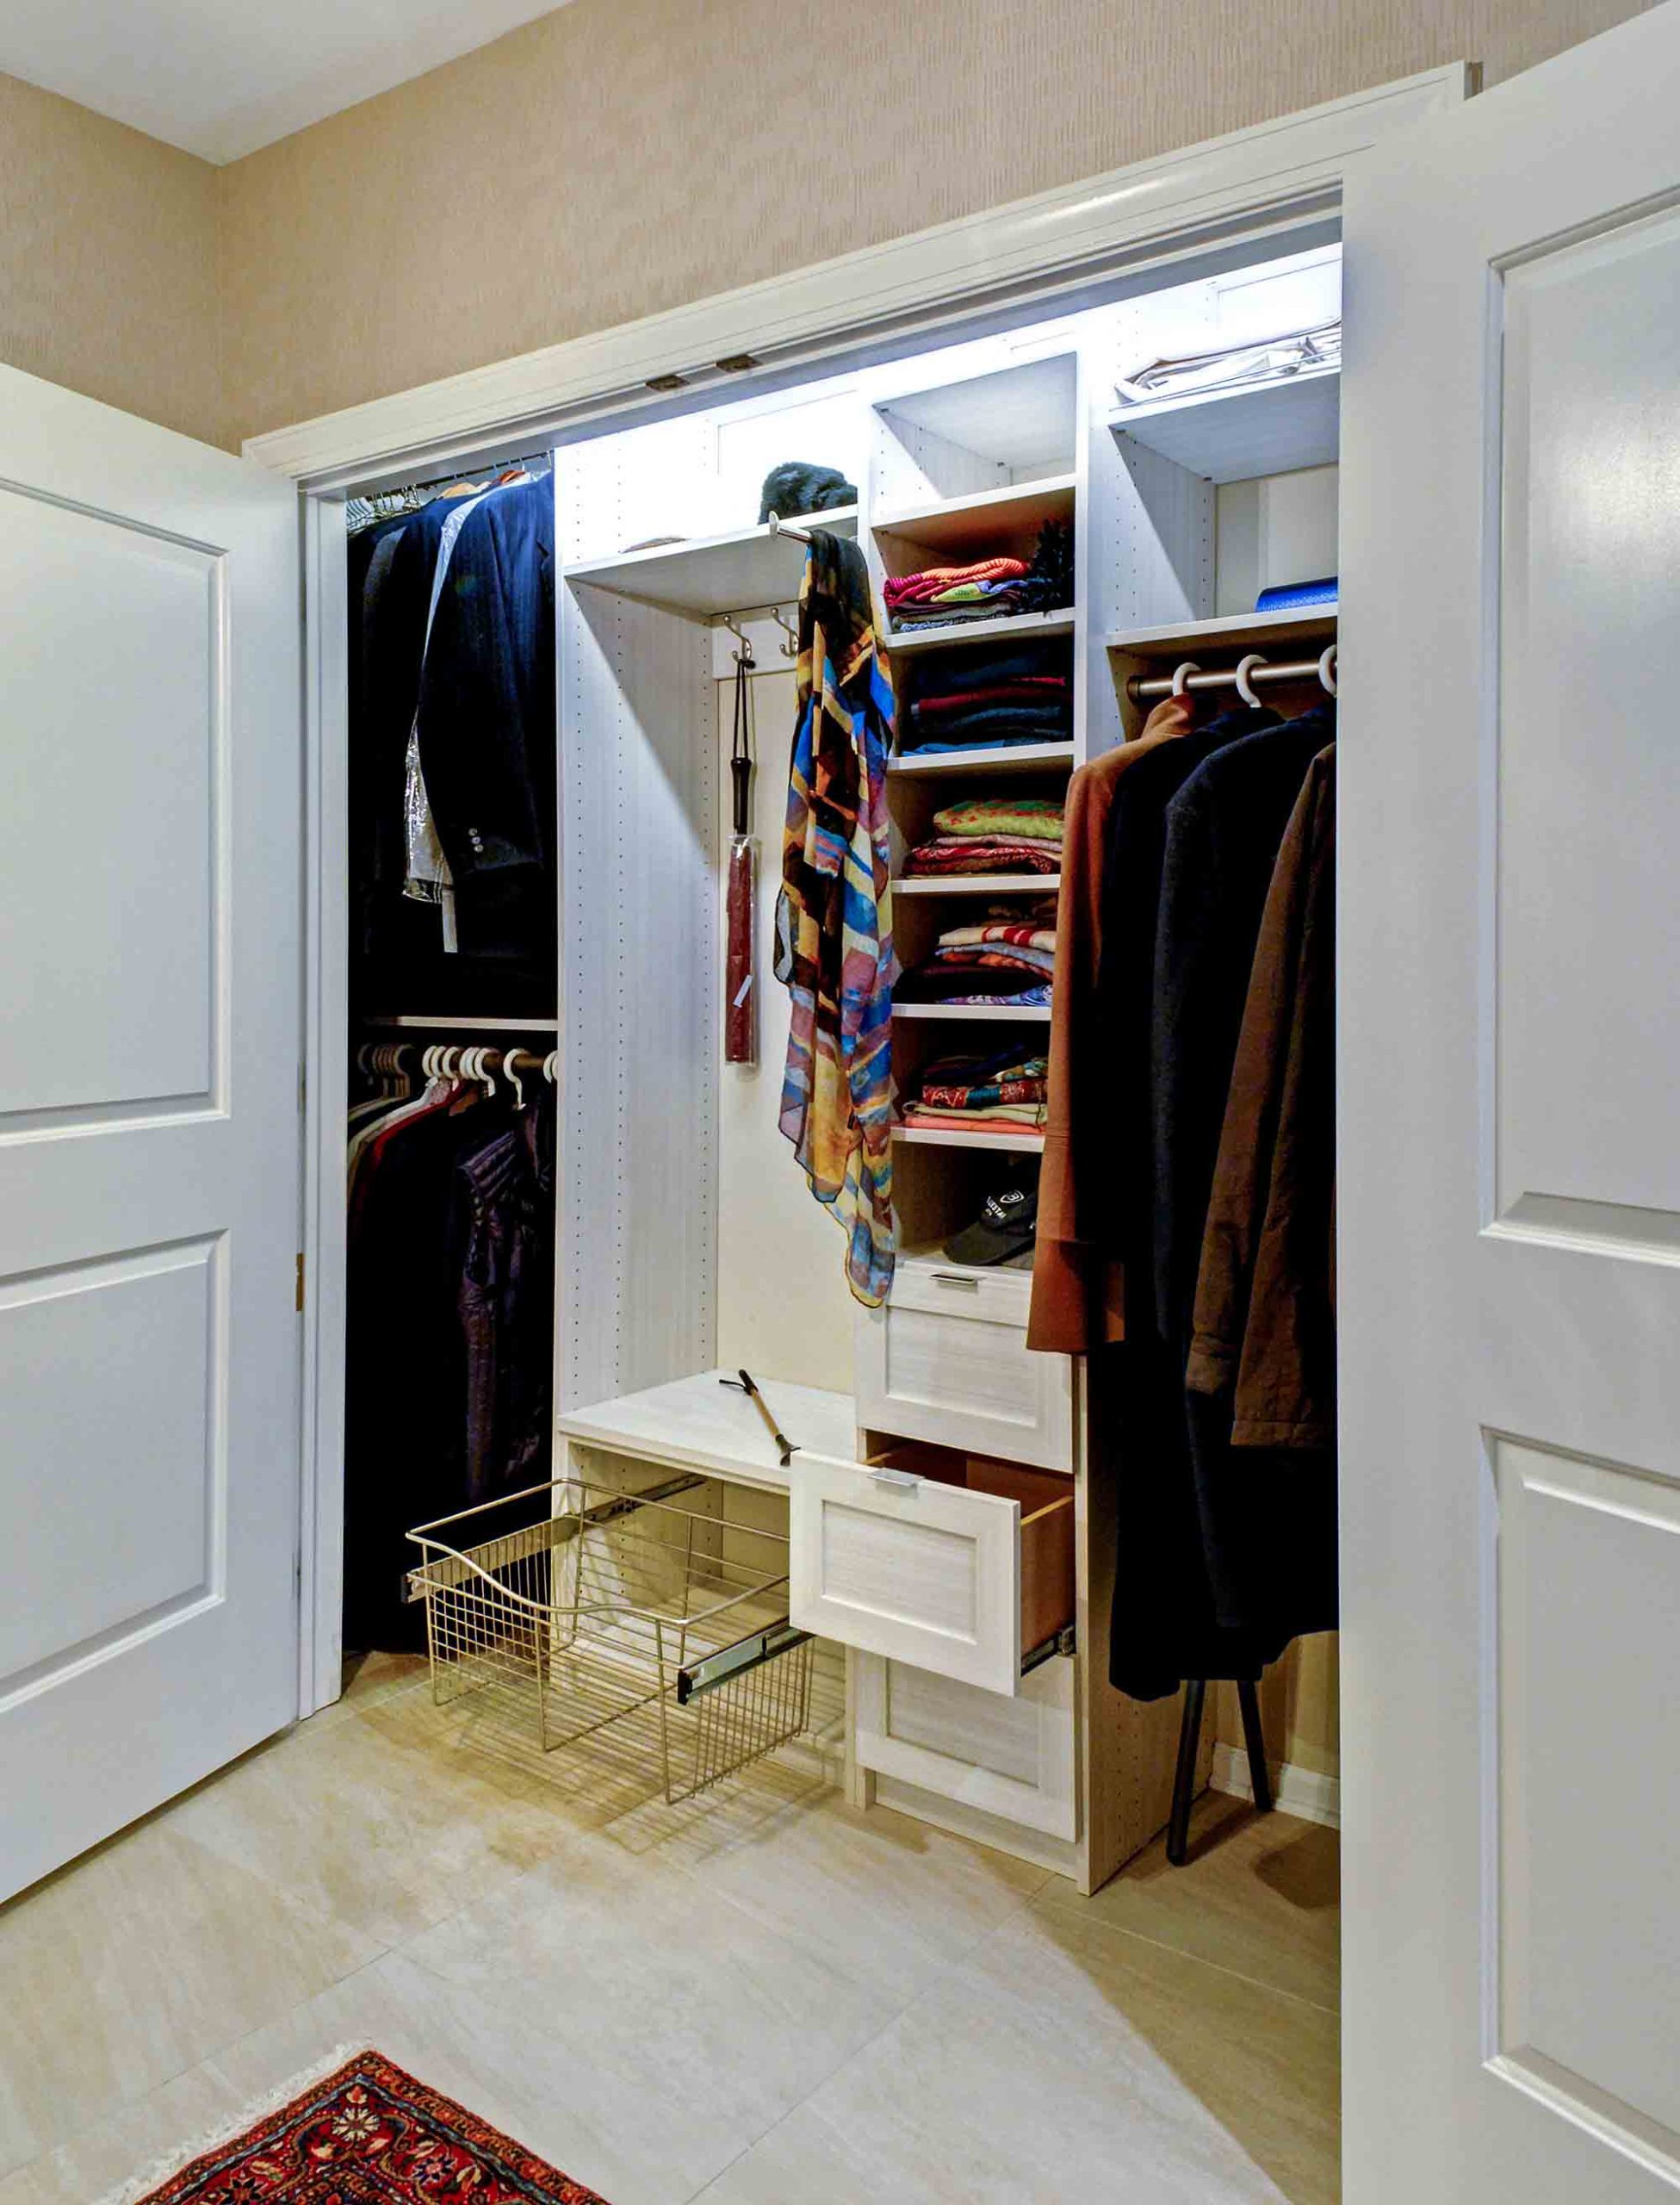 Reach in closet with optimized space